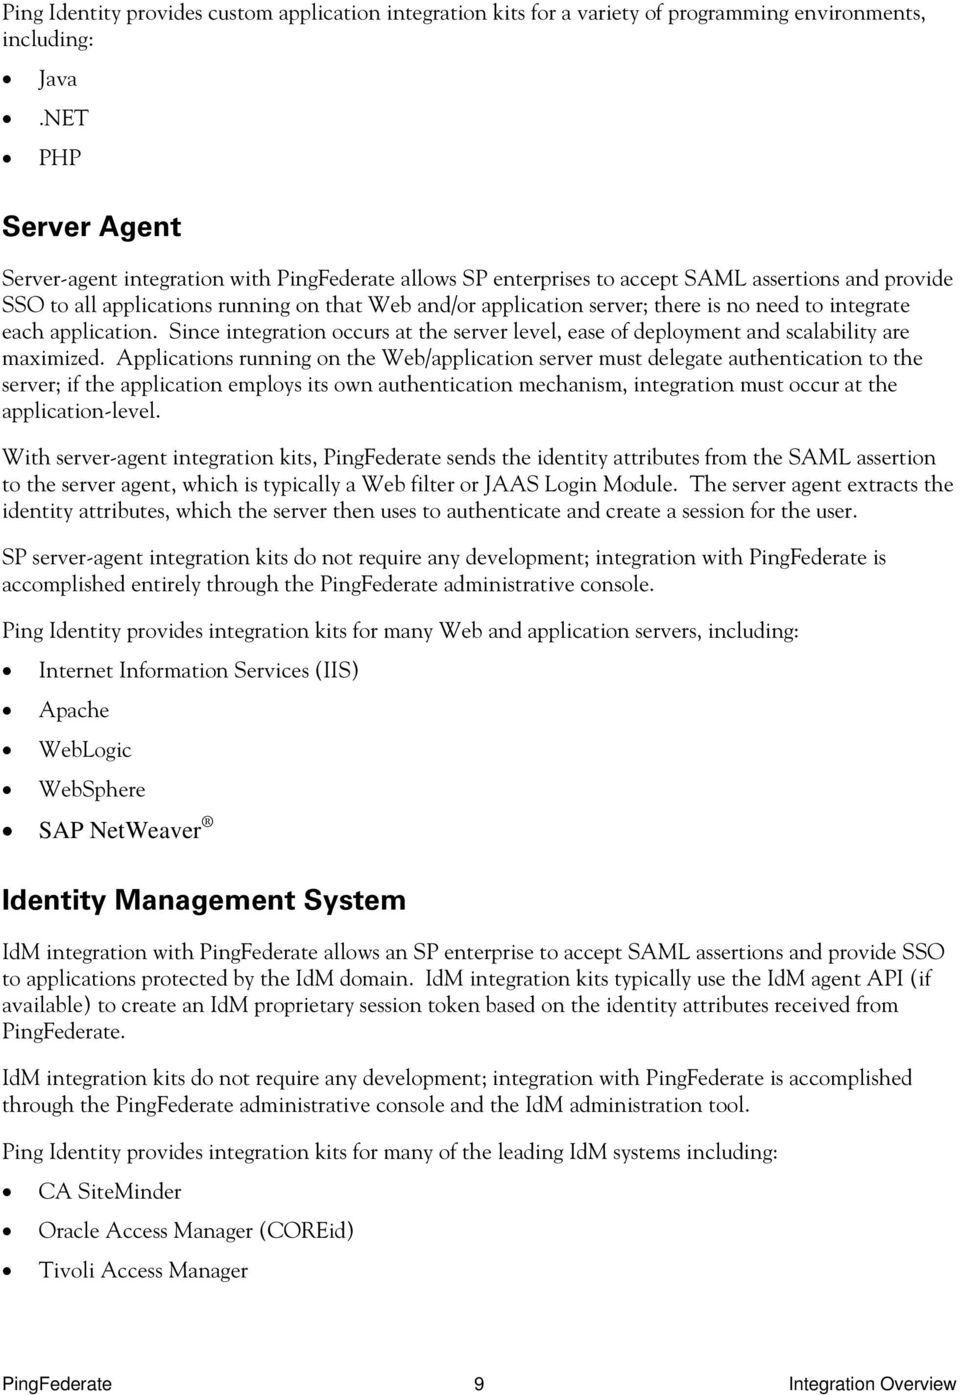 PingFederate  Integration Overview - PDF